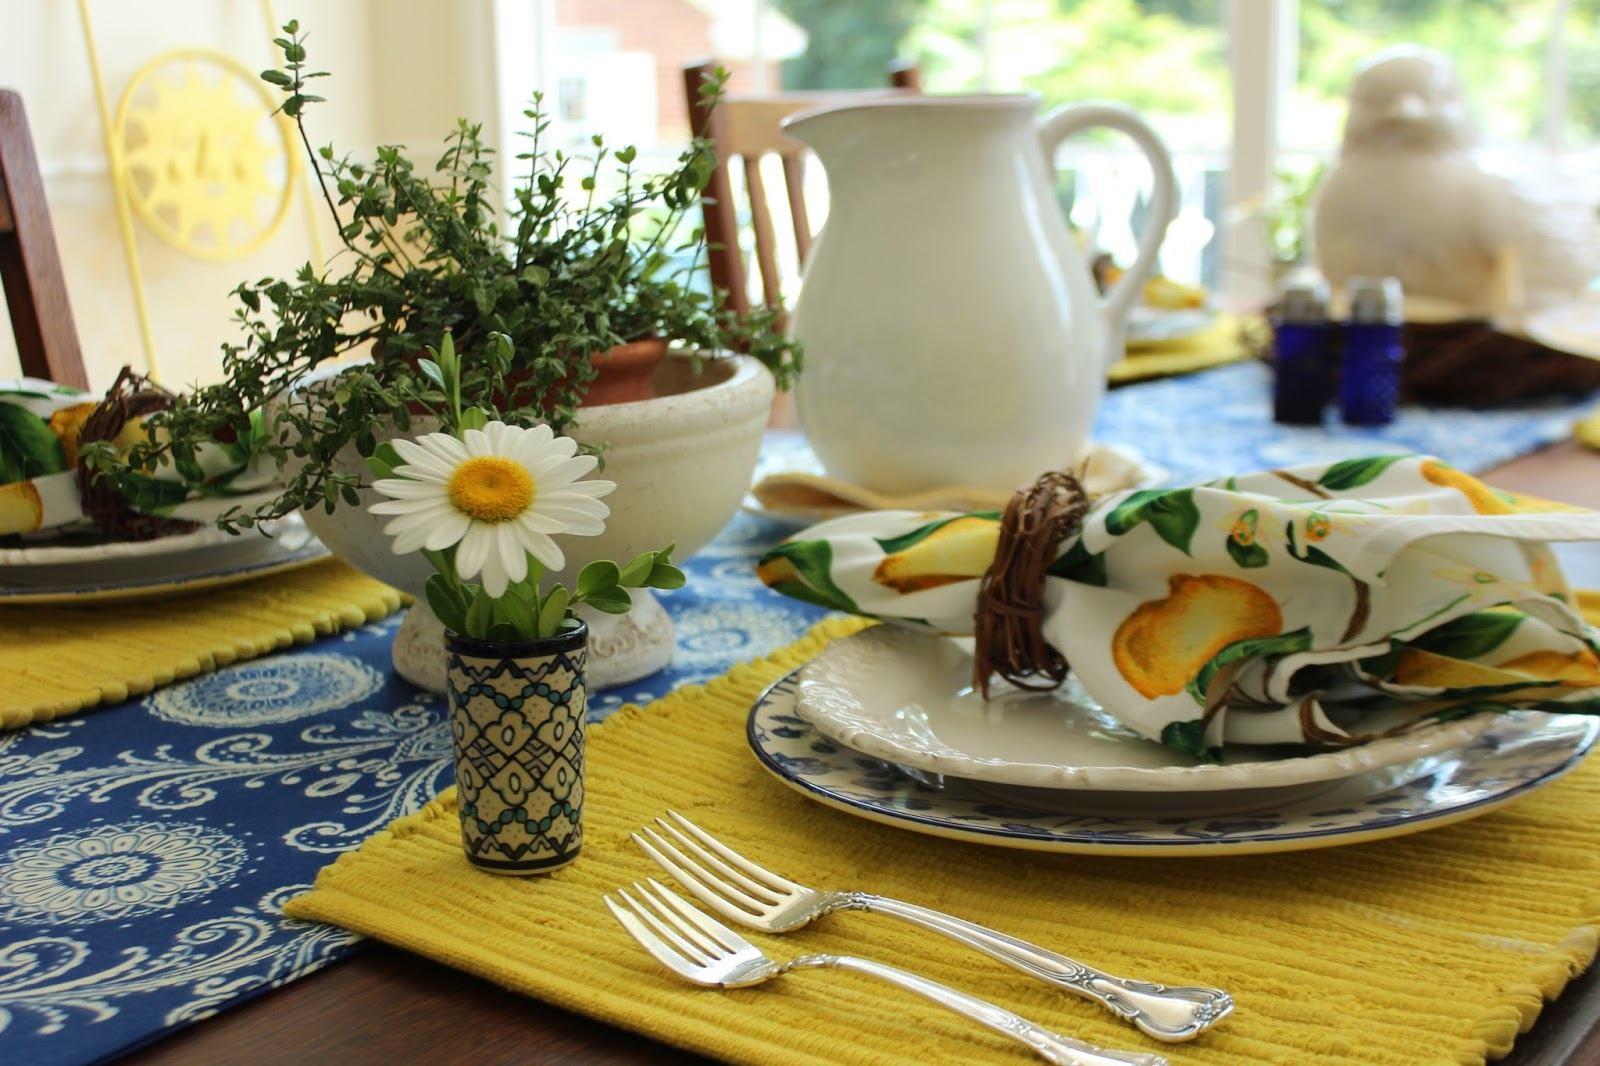 With Warm Yellows And Cool Blues Was The Perfect Table Setting For A  Mediterranean Style Summer Dinner With Friends.